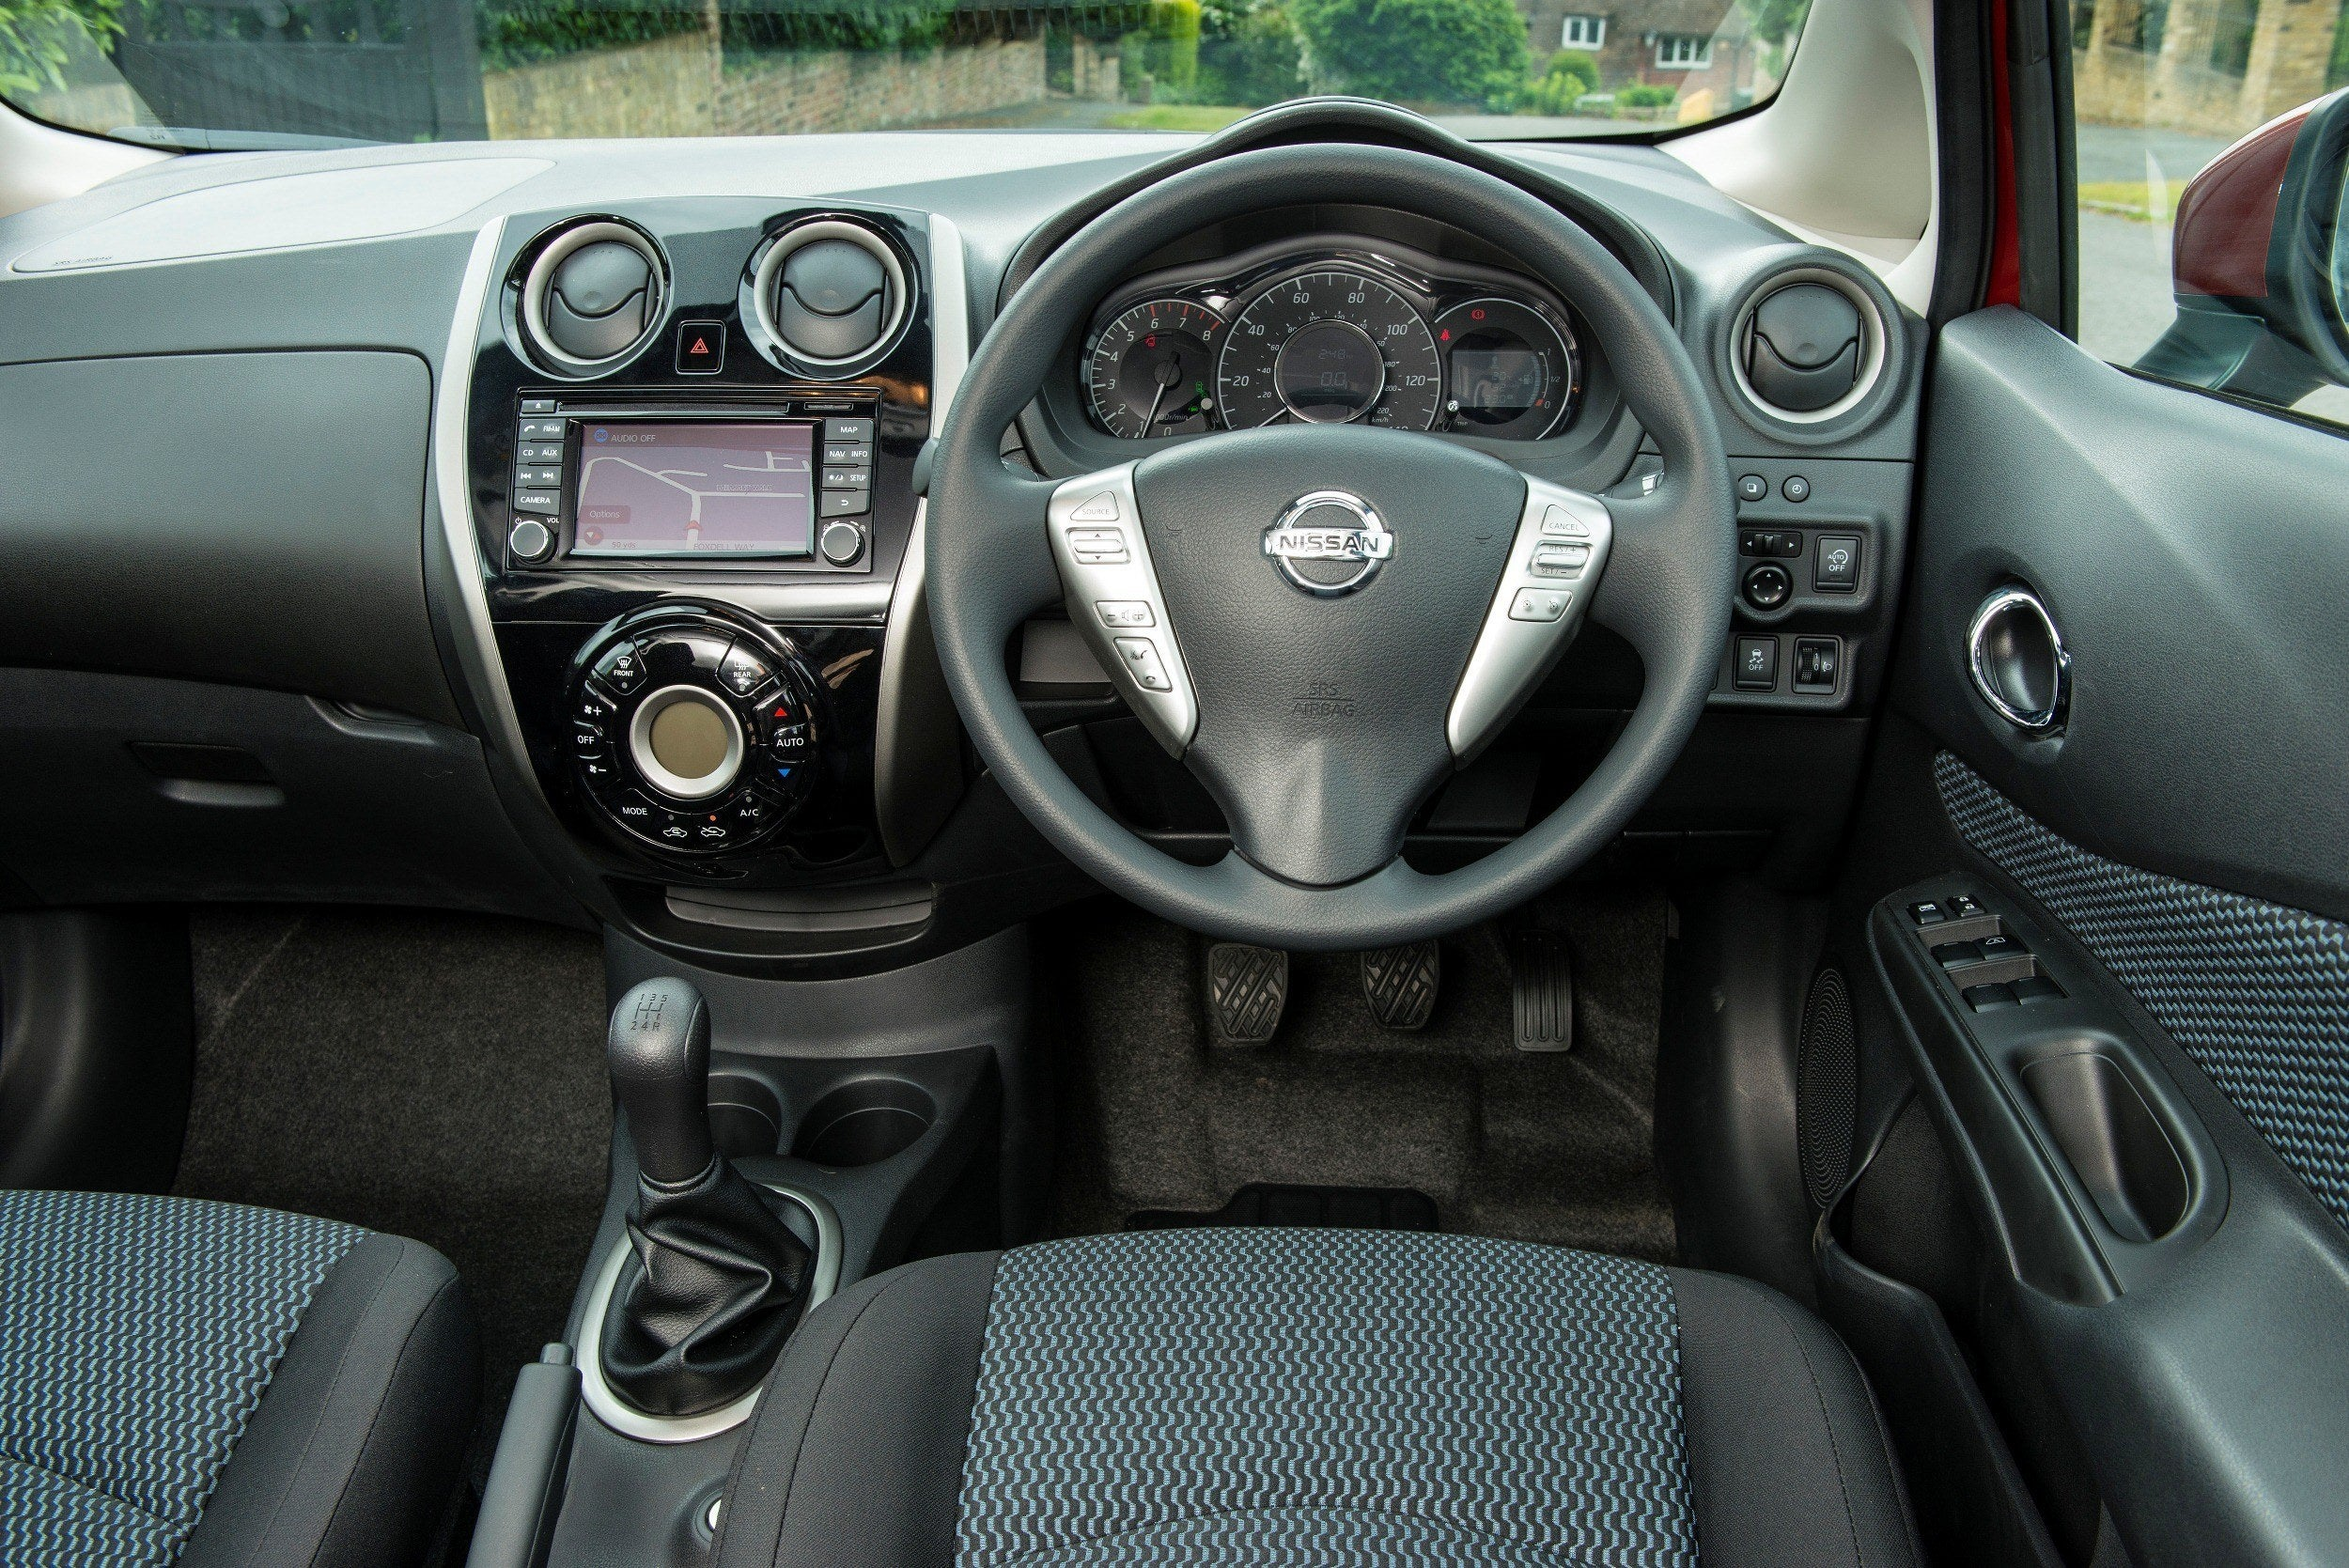 Nissan Note Review 2021 interior dashboard